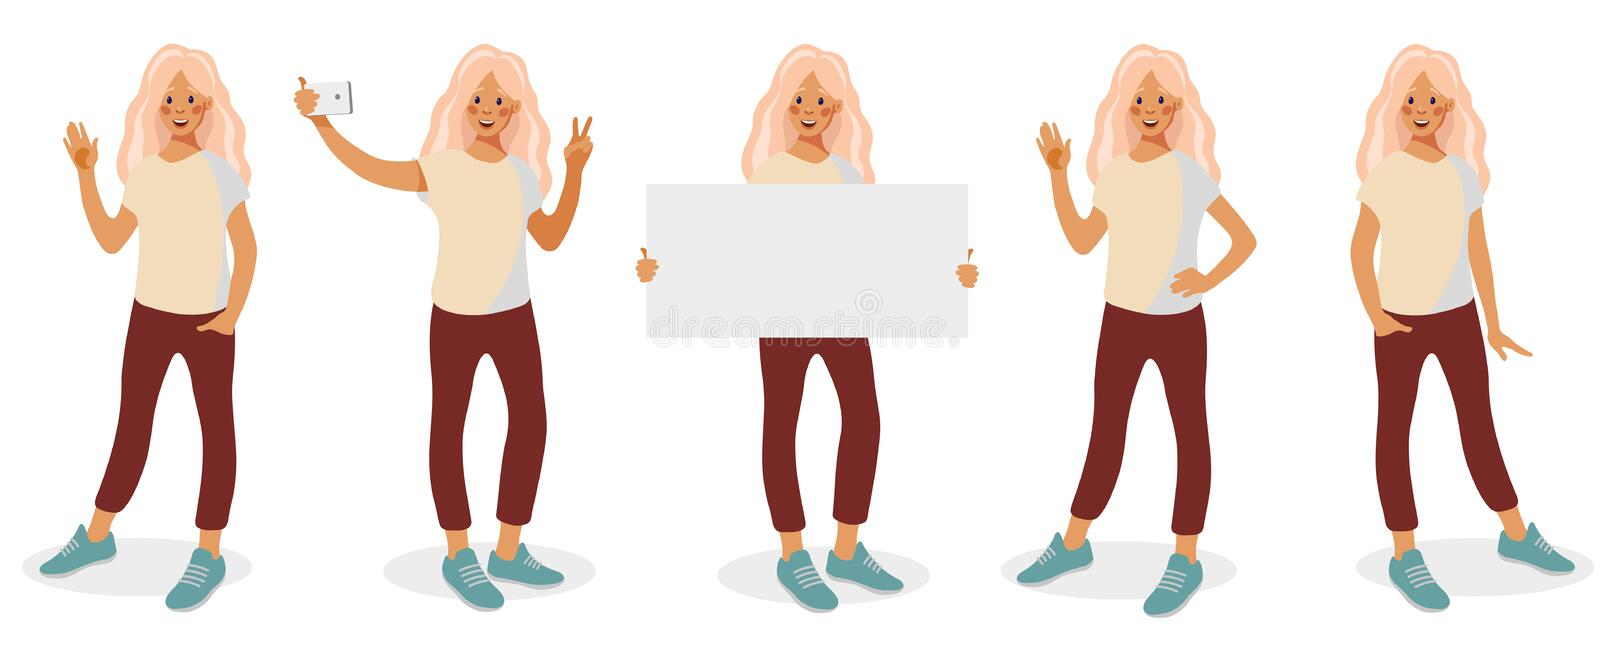 Set with different poses and gestures isolated on white background stock illustration